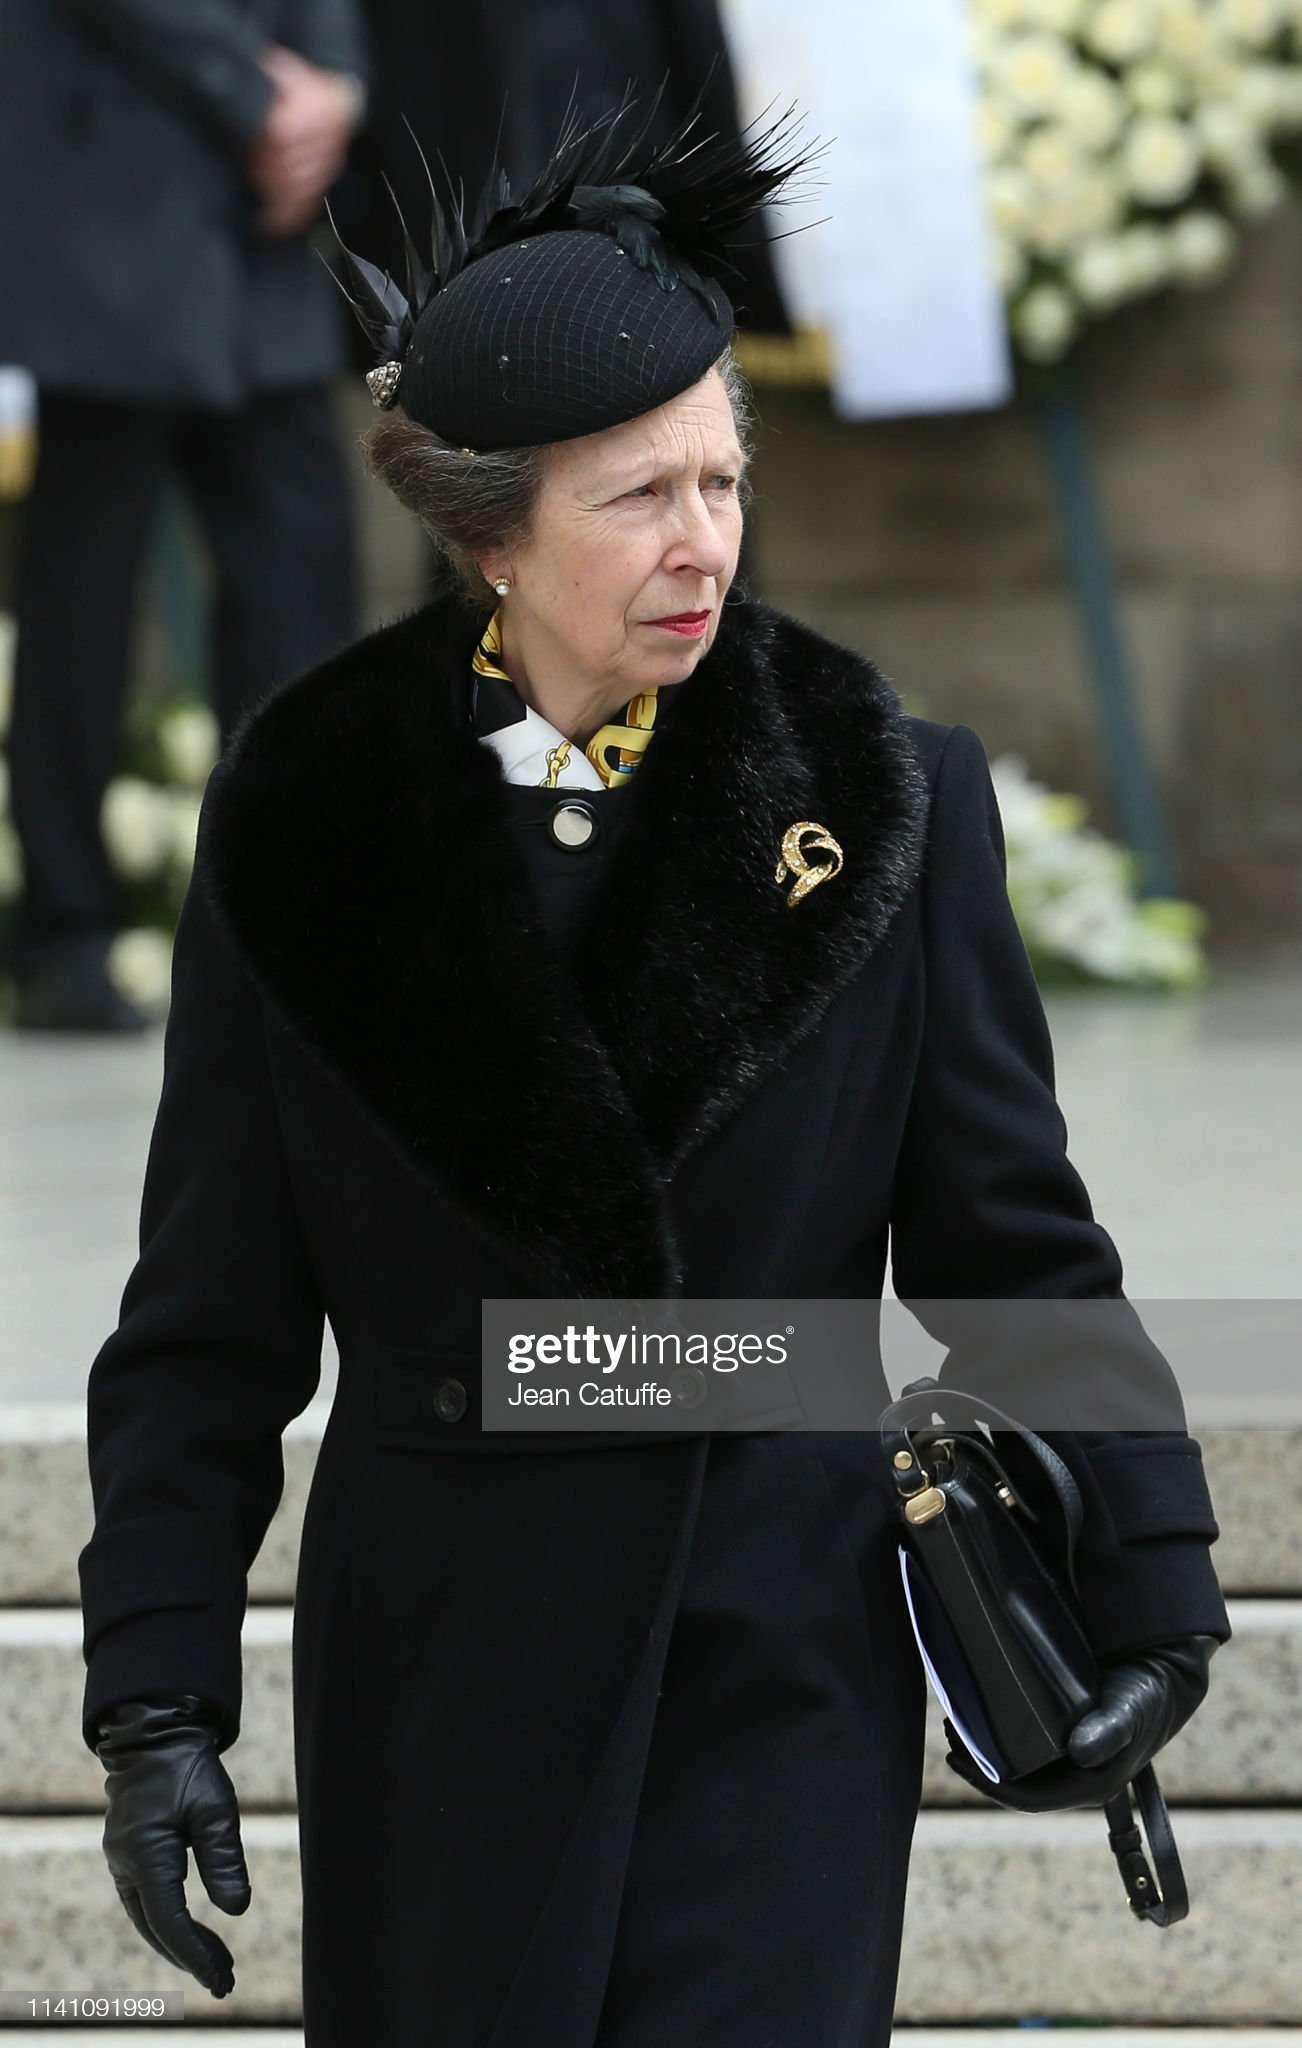 Похороны Великого Герцога Жана https://media.gettyimages.com/photos/princess-anne-leaves-the-funeral-of-grand-duke-jean-of-luxembourg-at-picture-id1141091999?s=2048x2048